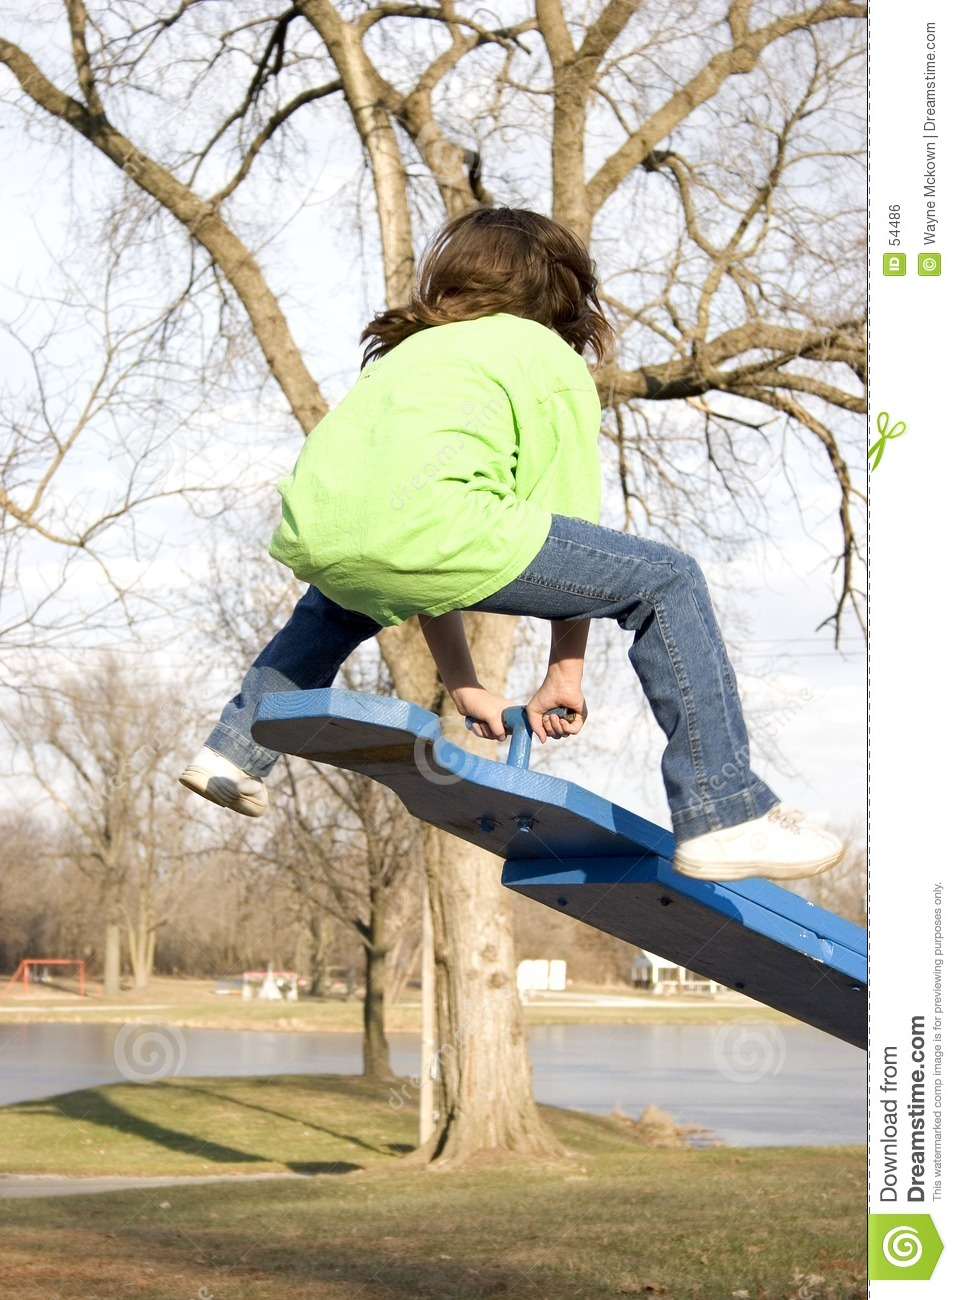 Teeter αναπήδησης totter